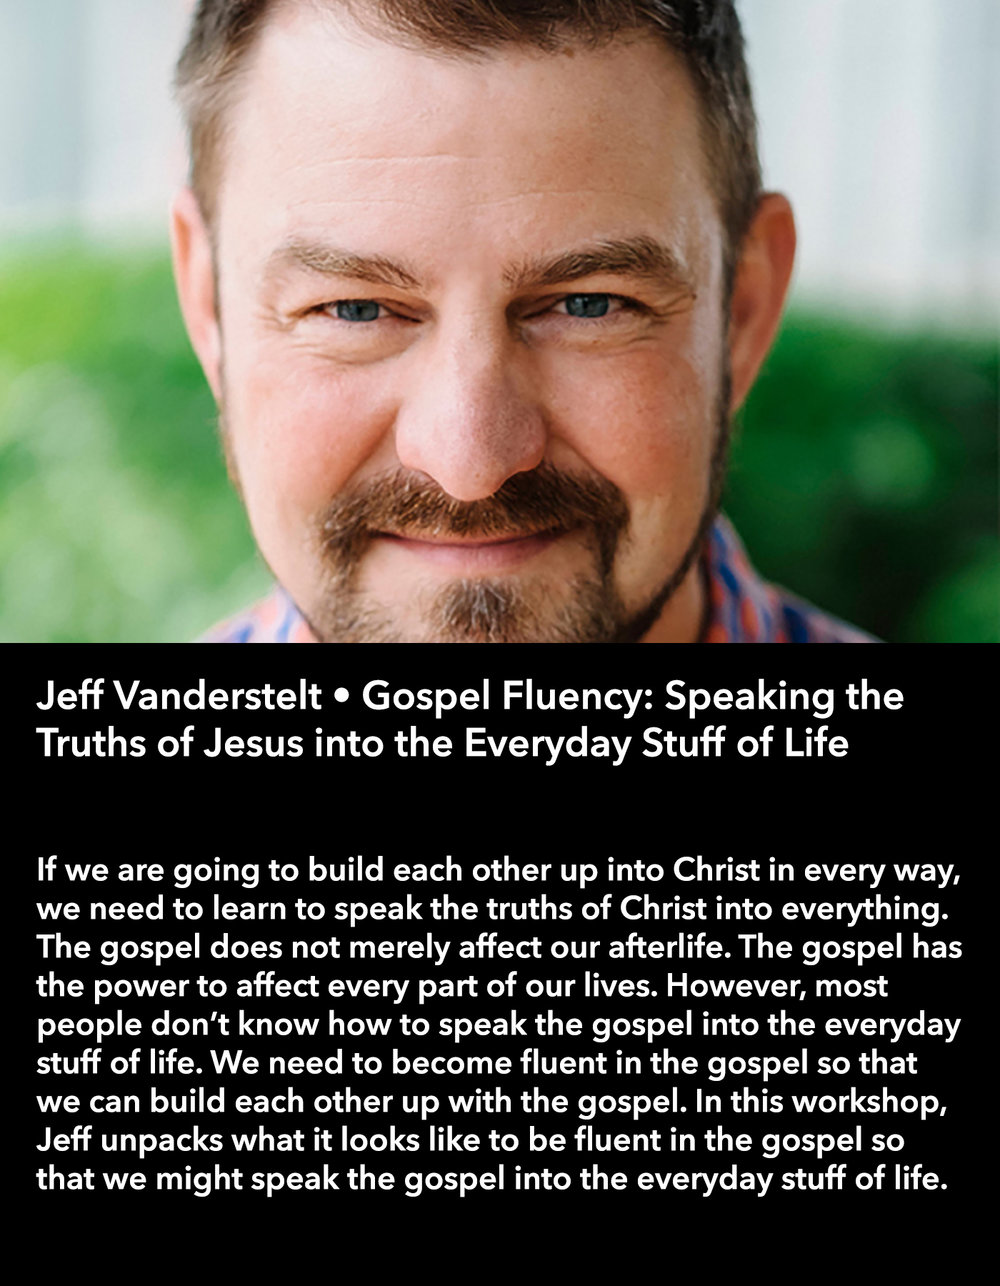 Jeff Vanderstelt • Gospel Fluency: Speaking the Truths of Jesus into the Everyday Stuff of Life • Thursday Night, March 16 • 8:30 pm – 9:45 pm